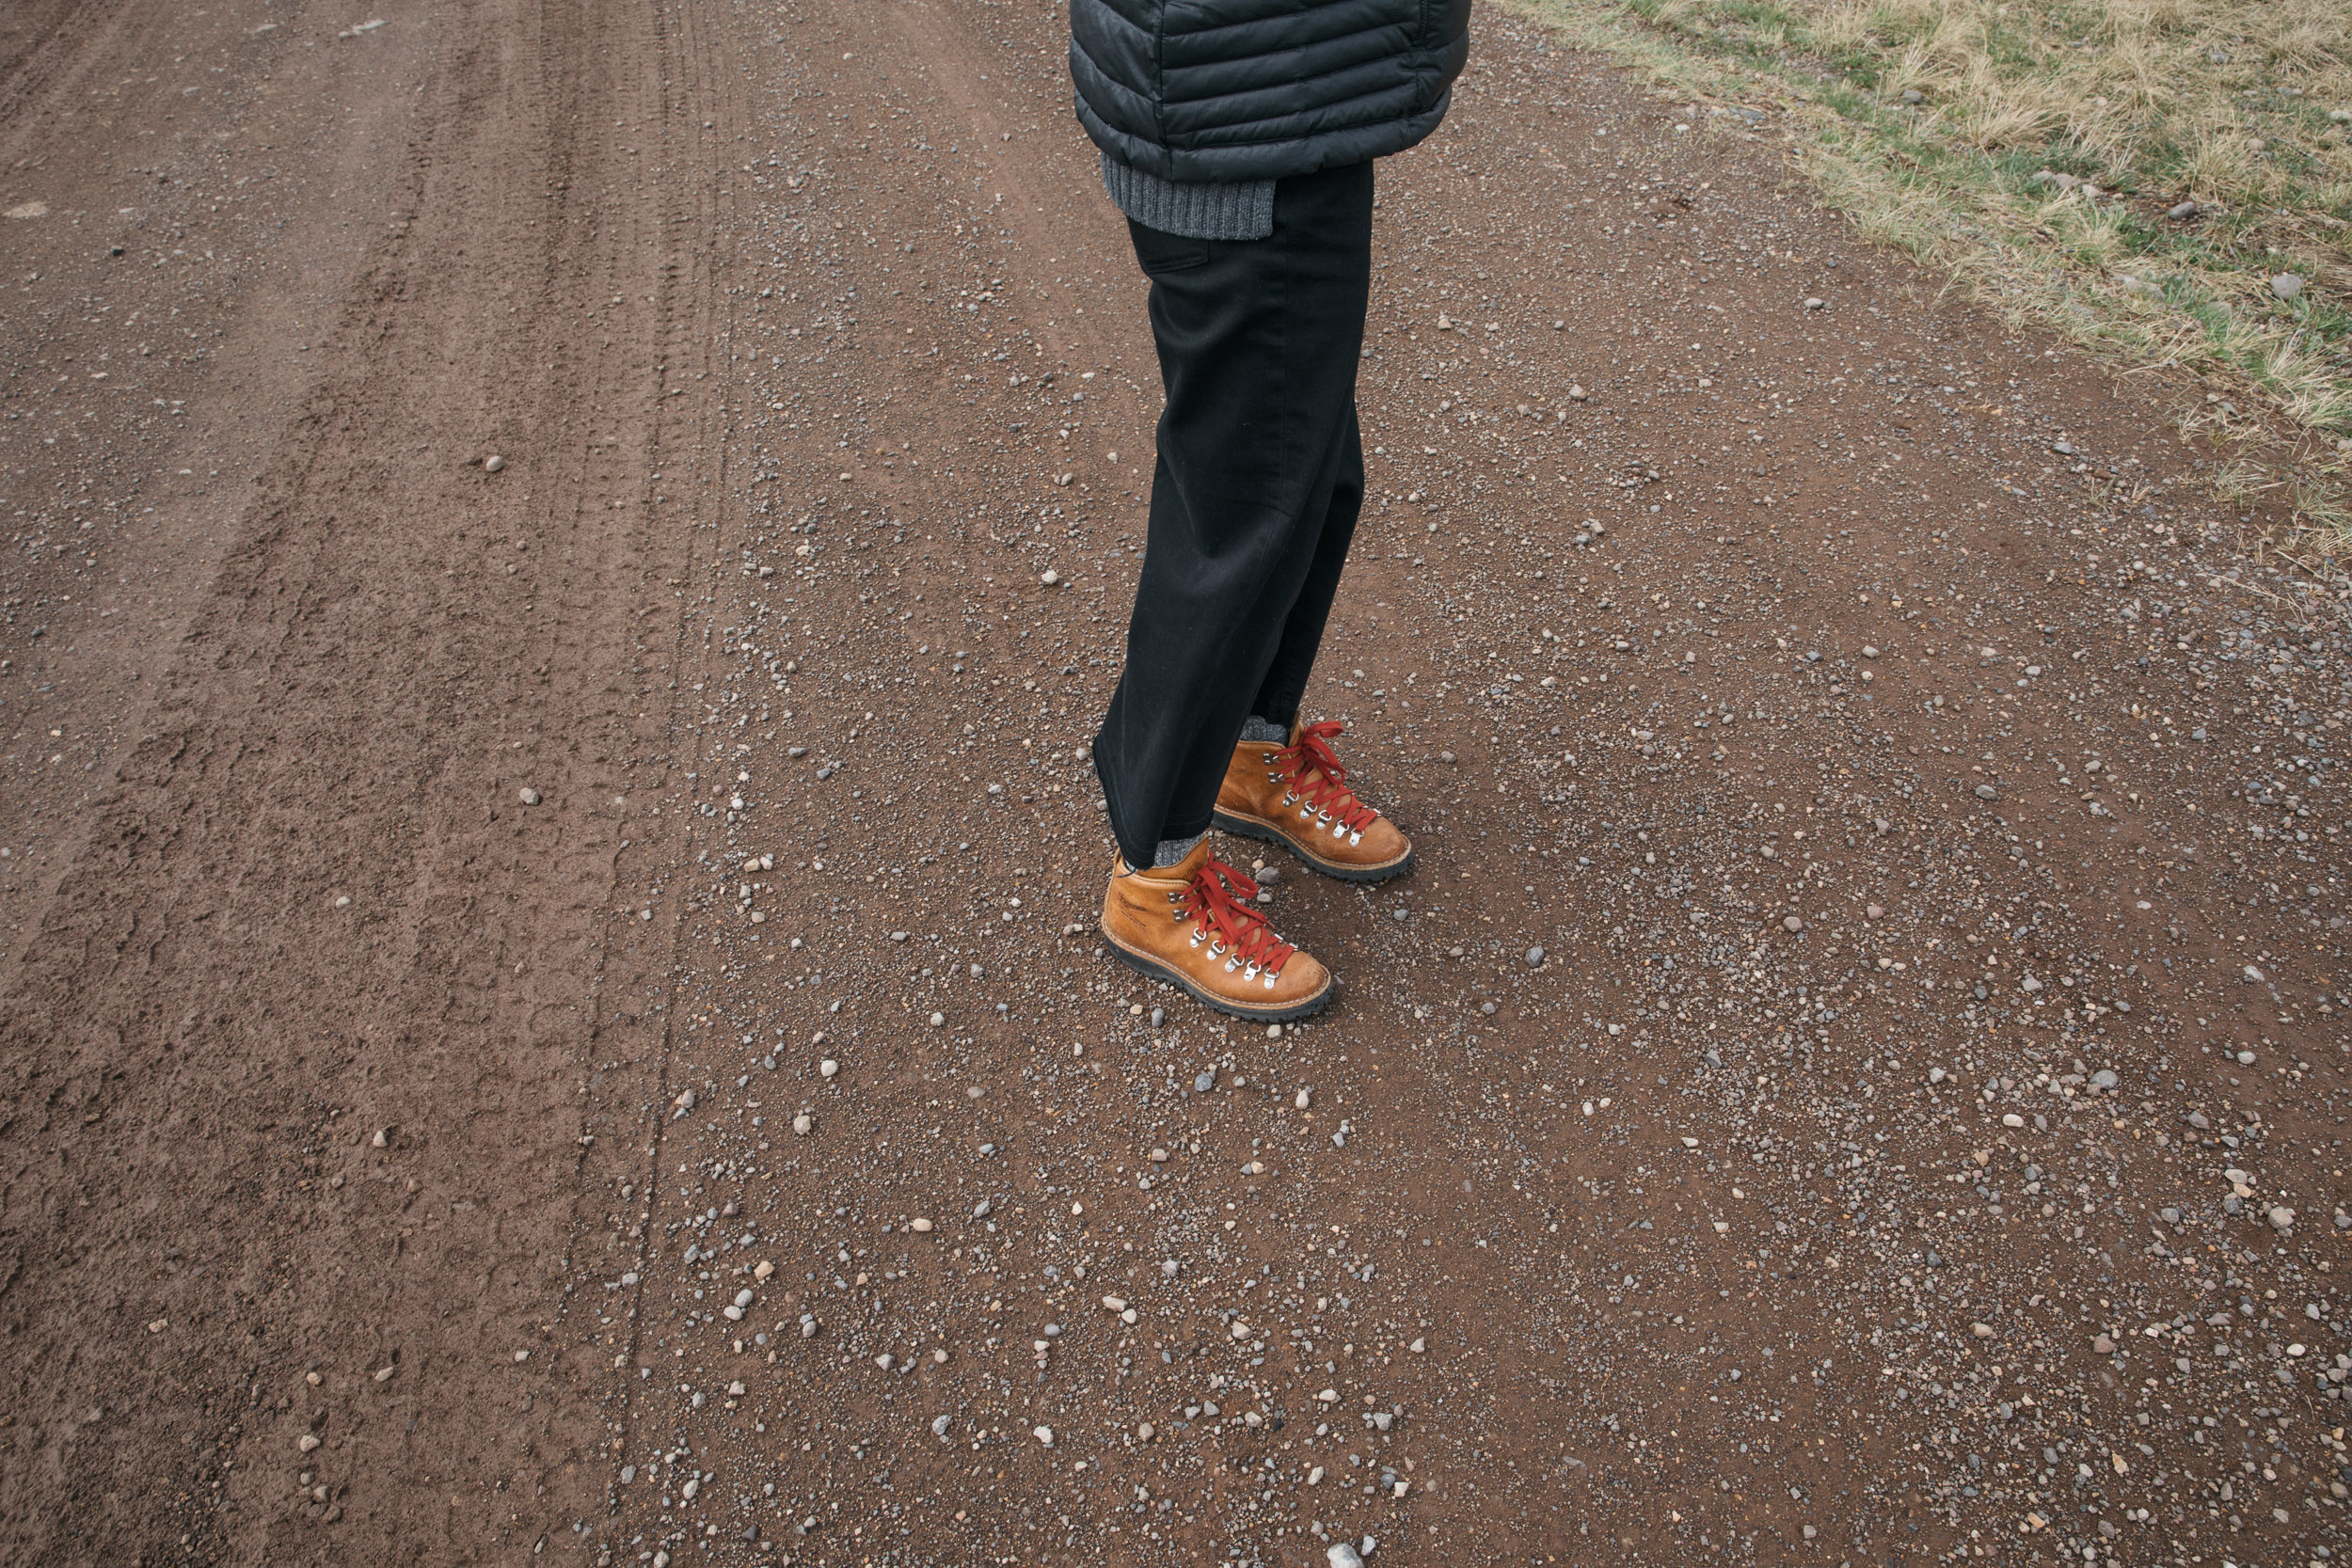 Danner boots with red laces on a woman standing on a red dirt road in Montana